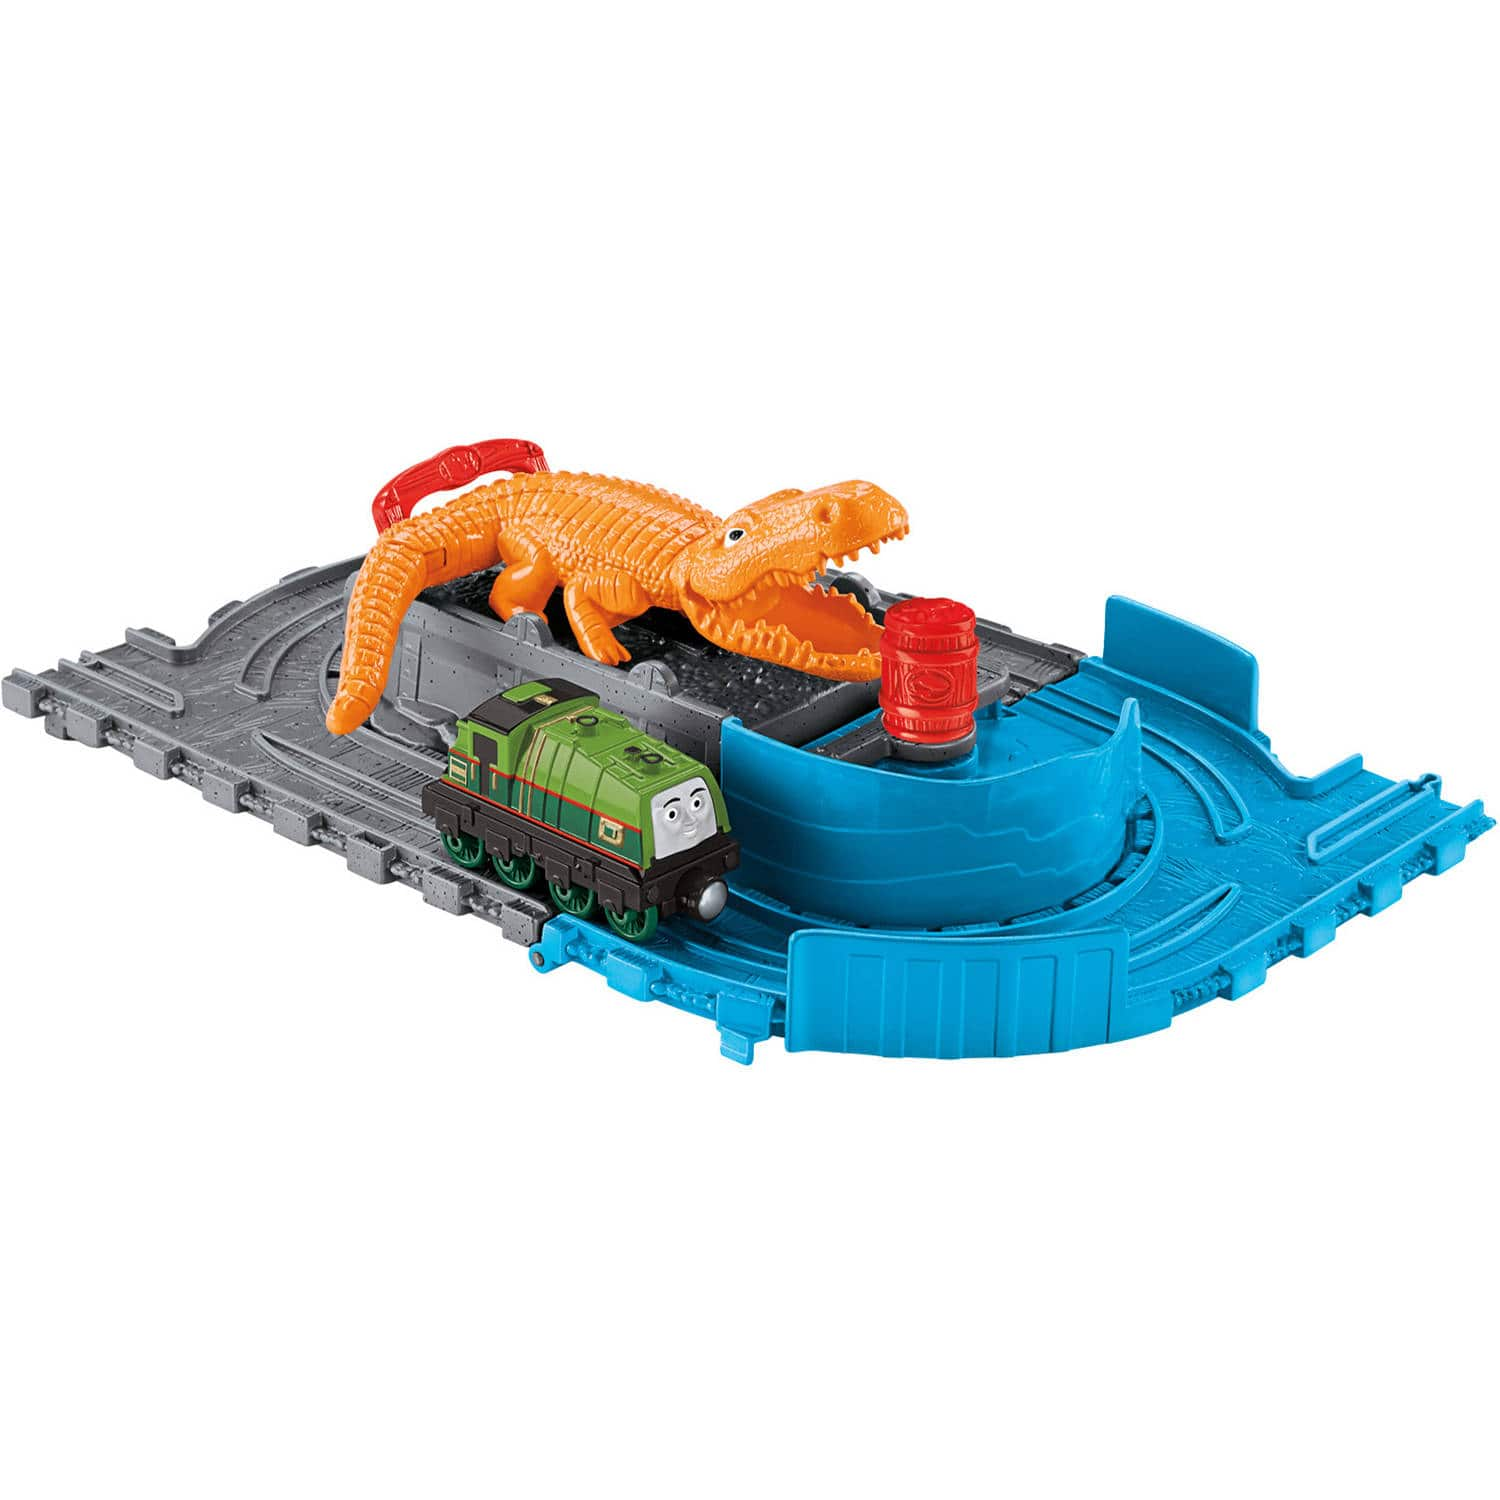 Thomas & Friends Gator's Chase & Chomp $15 & More at Walmart w/ Free Ship on $35+